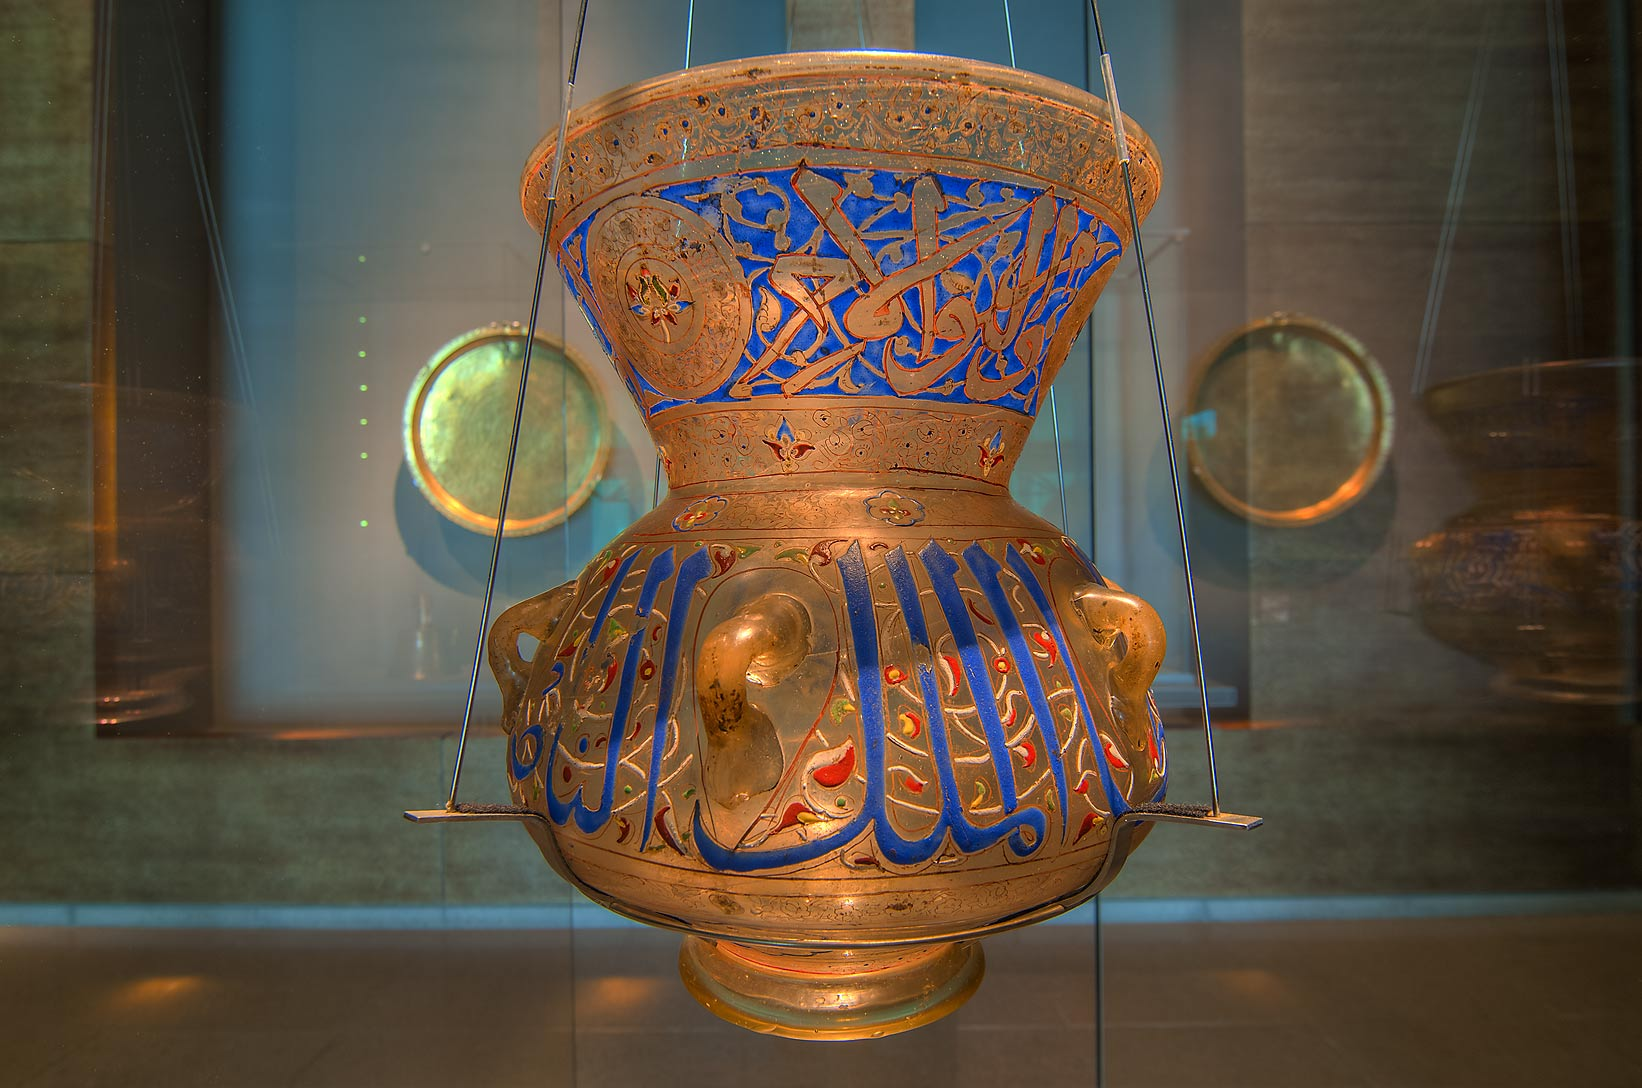 Egyptian mosque lamp in Museum of Islamic Art. Doha, Qatar